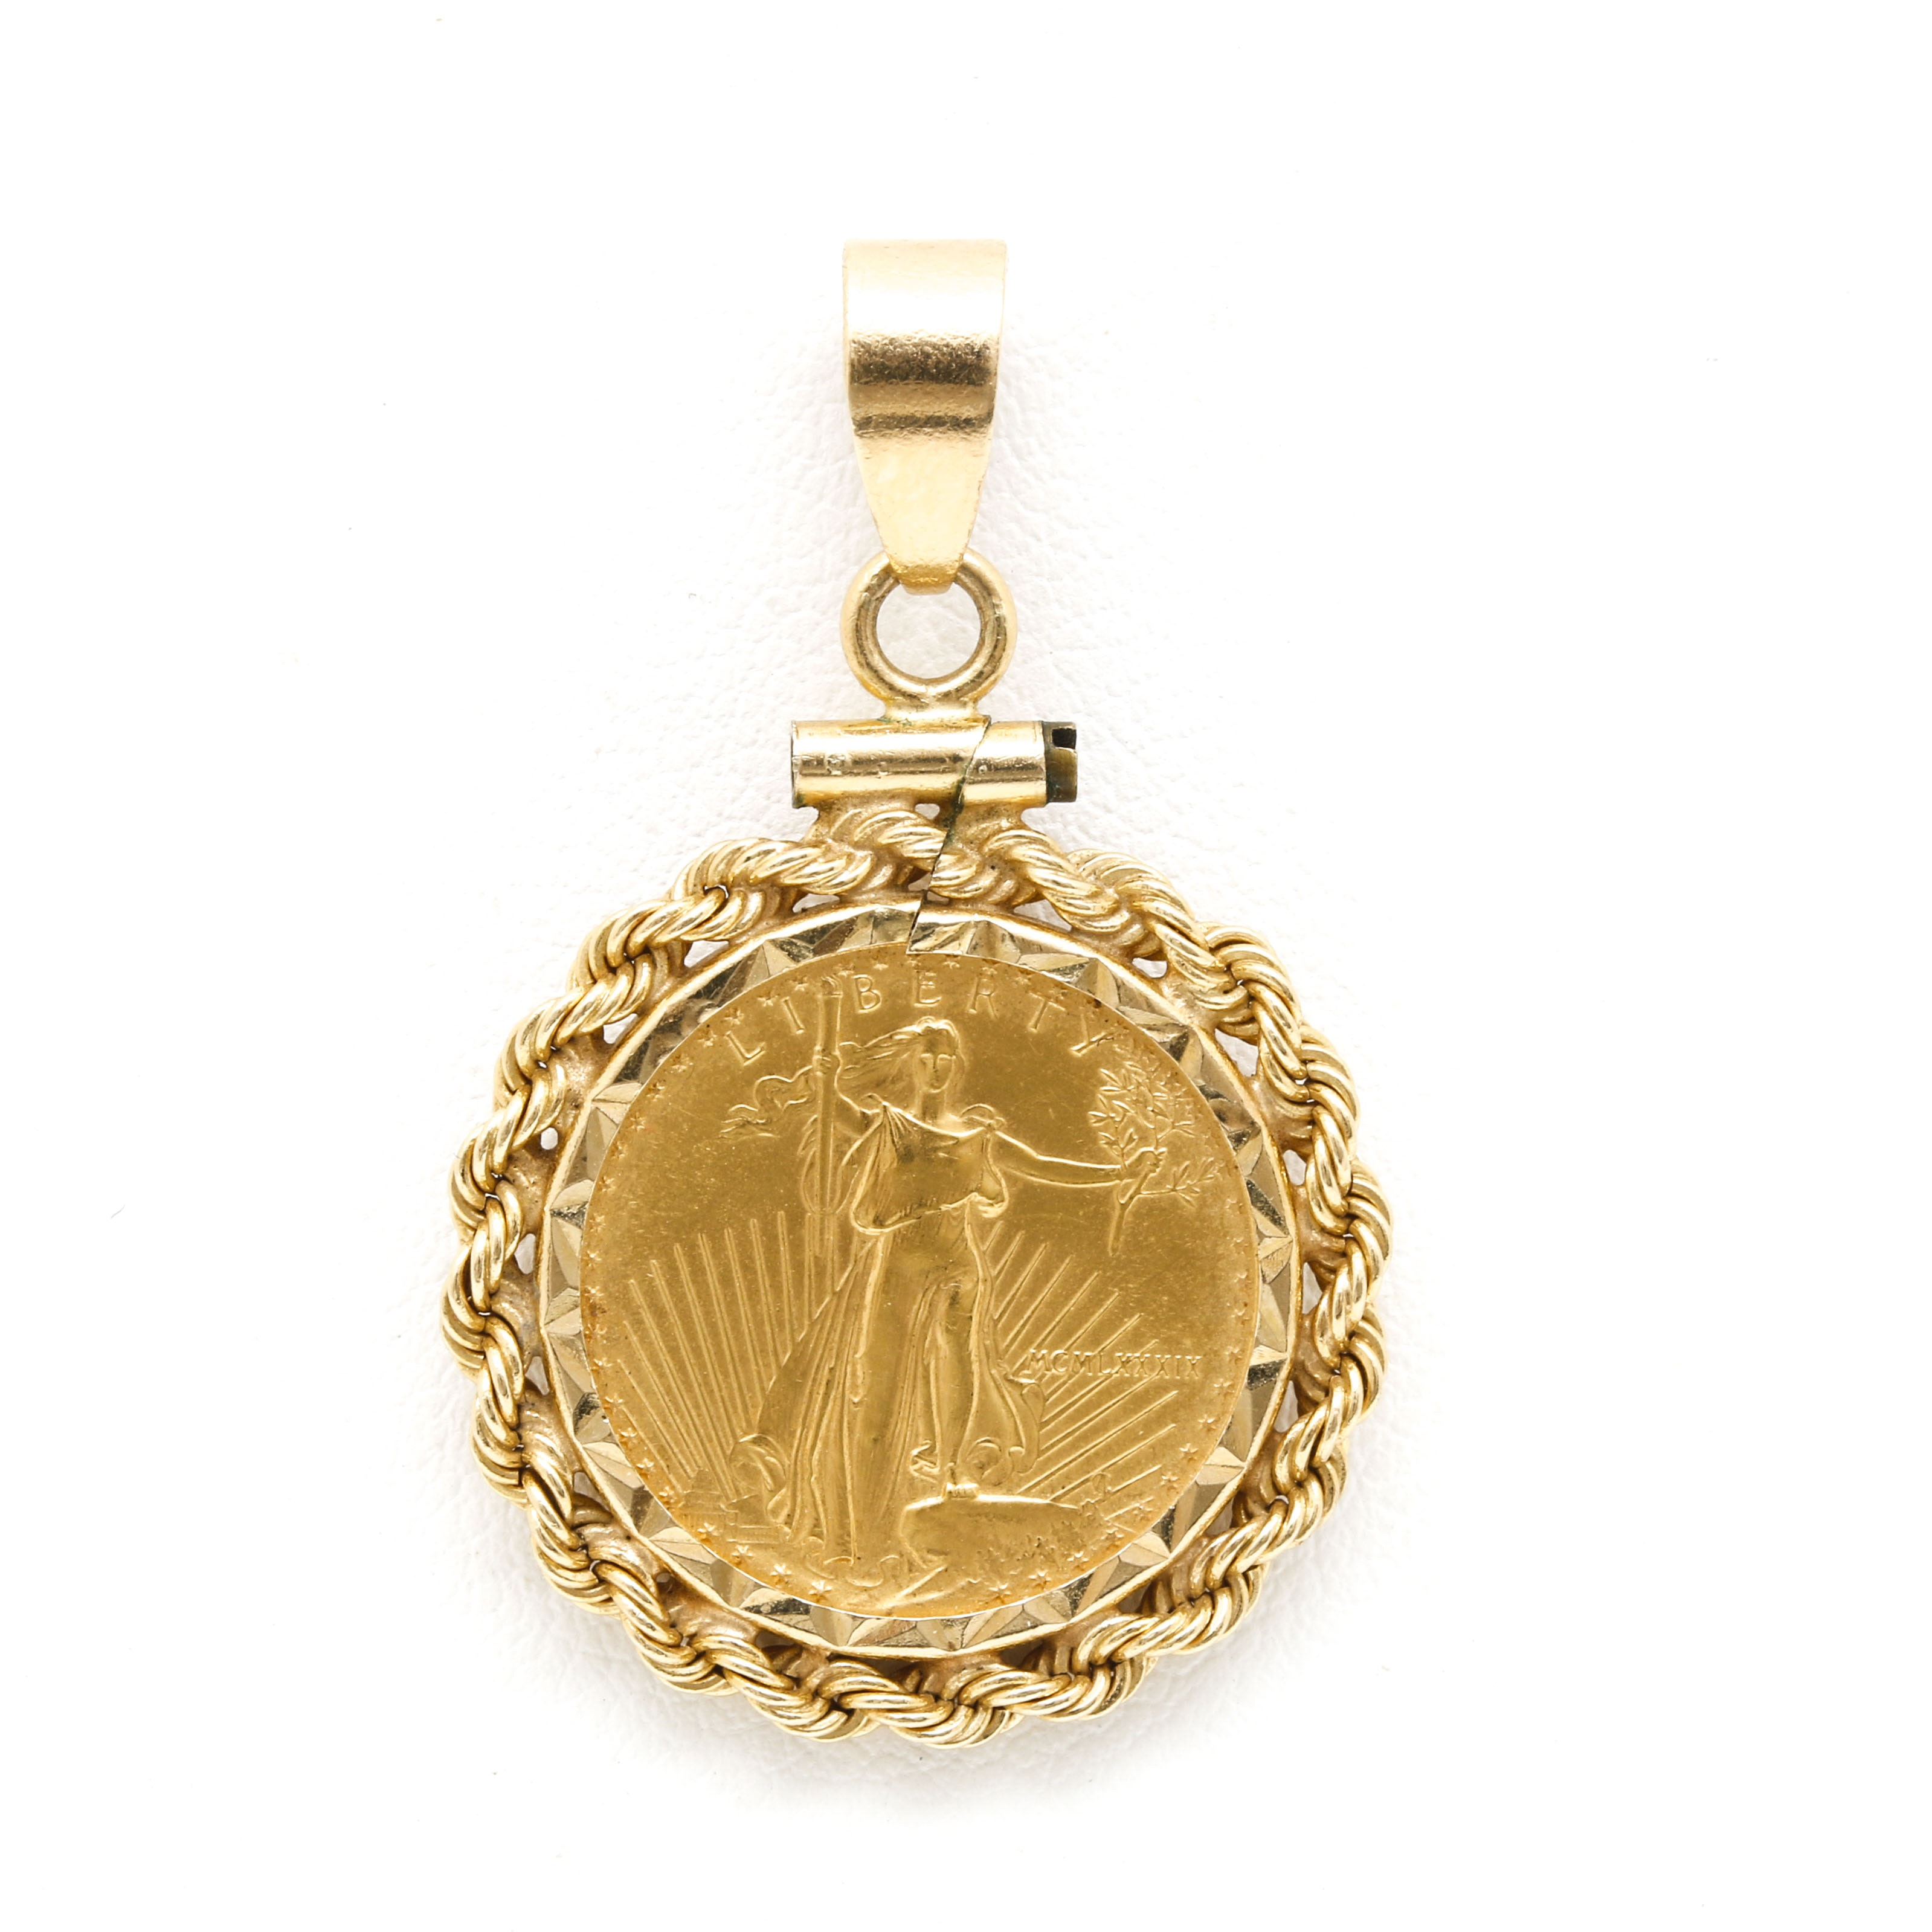 14K Yellow Gold Pendant Set with American Eagle Gold Bullion Coin